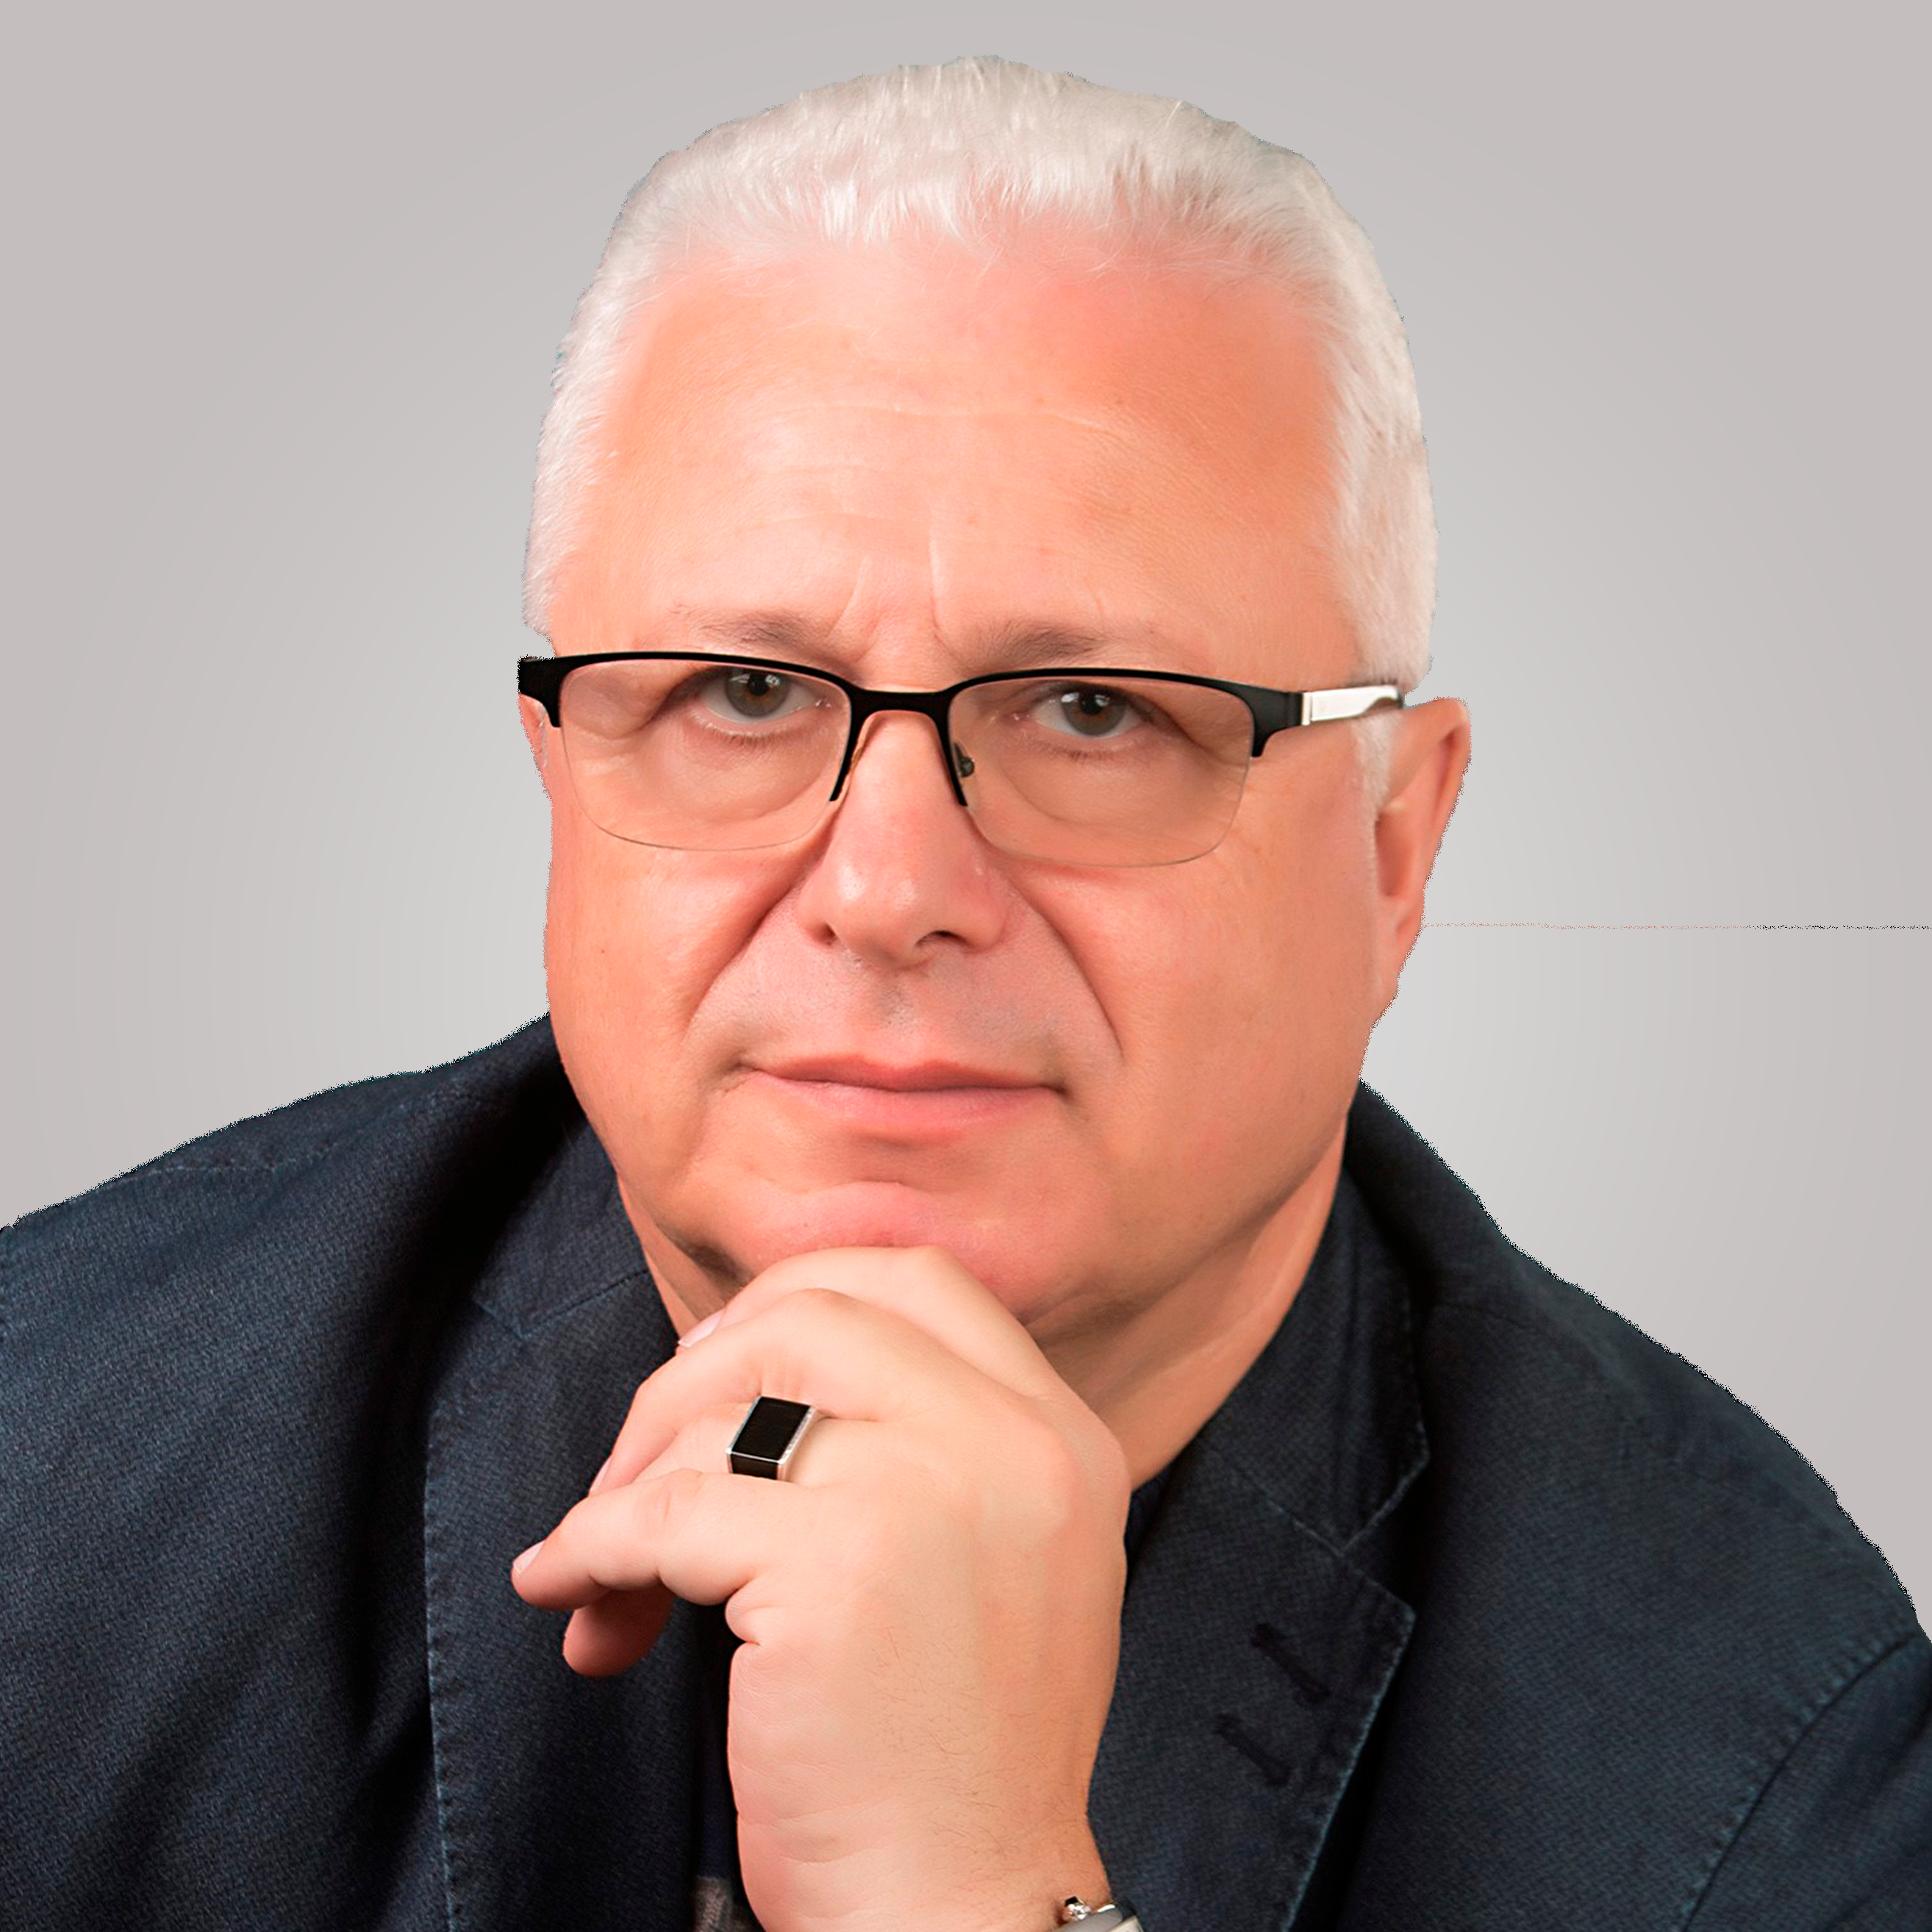 A headshot of Dr. Lazar Finker, the director of the Finker-Frenkel Foundation.